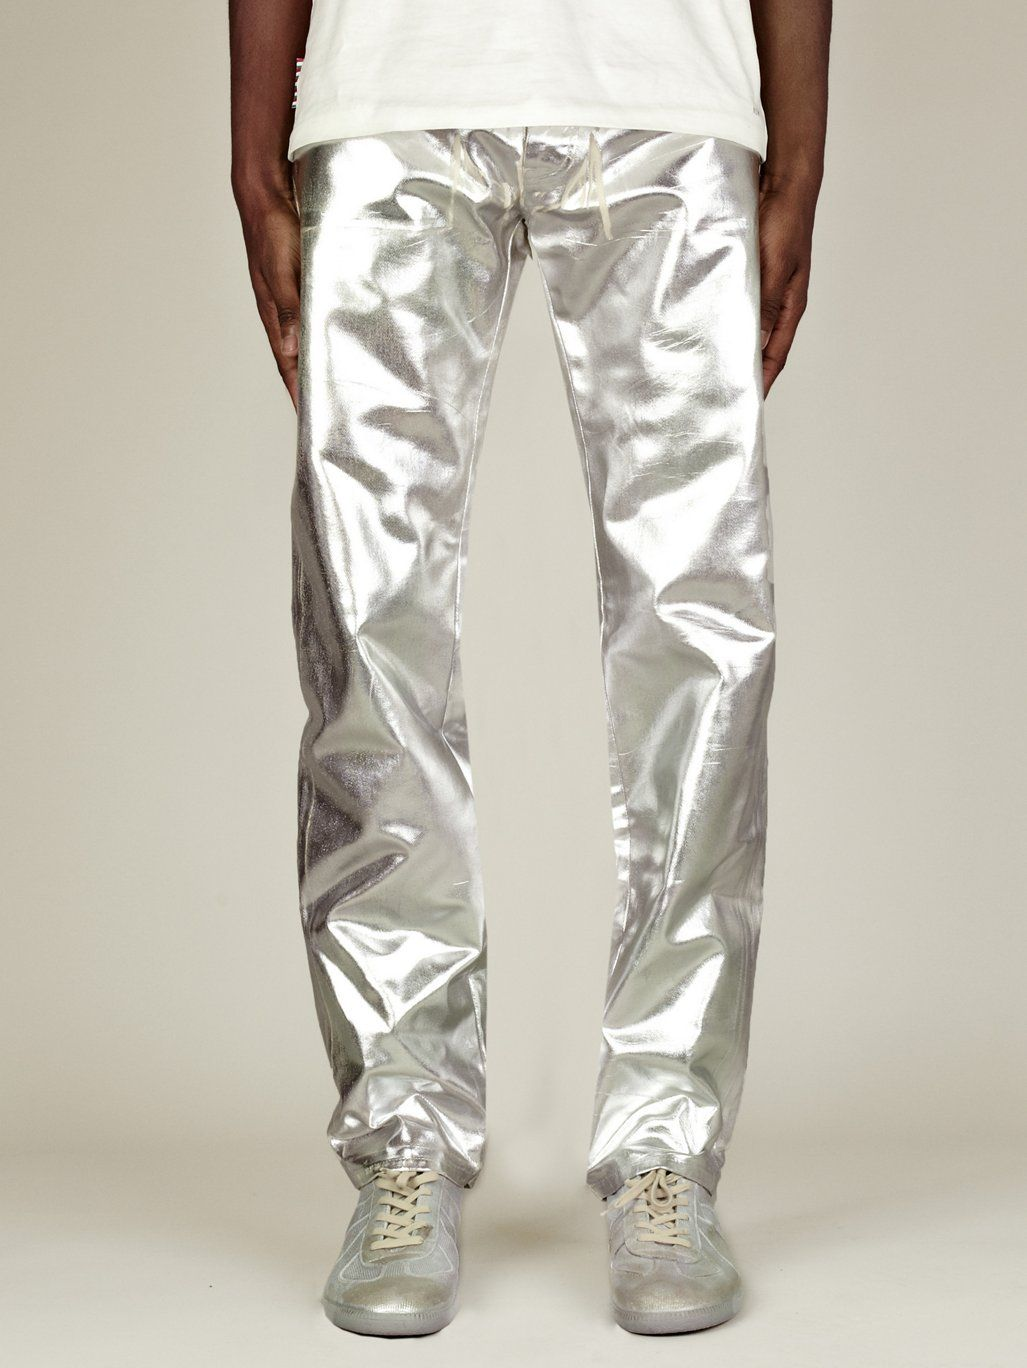 Maison Martin Margiela 10 Men's Silver Five-Pocket Jeans | oki-ni ...